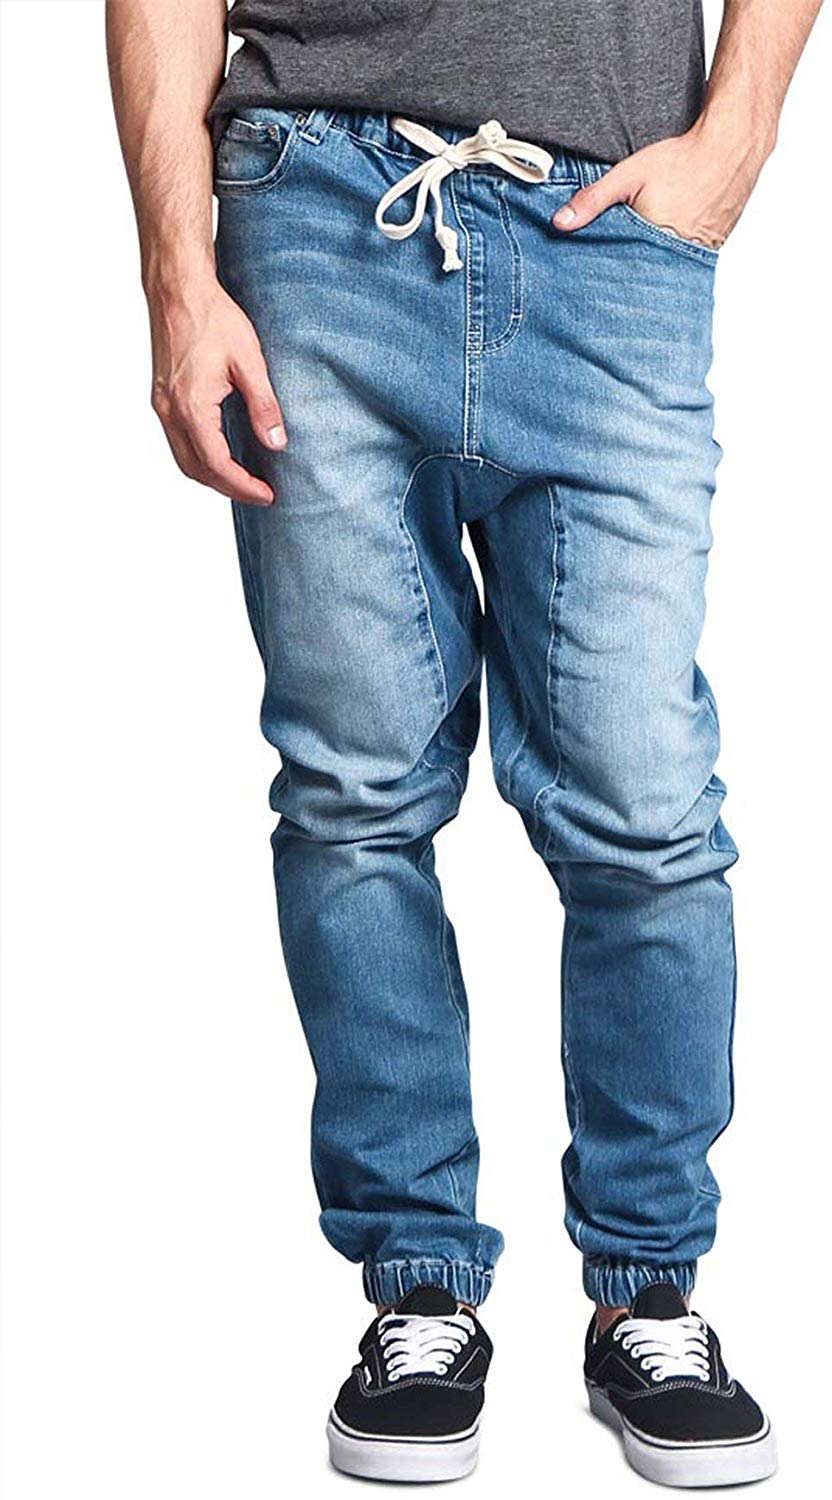 Victorious Mens Drop Crotch Joggers Denim Jean Pants